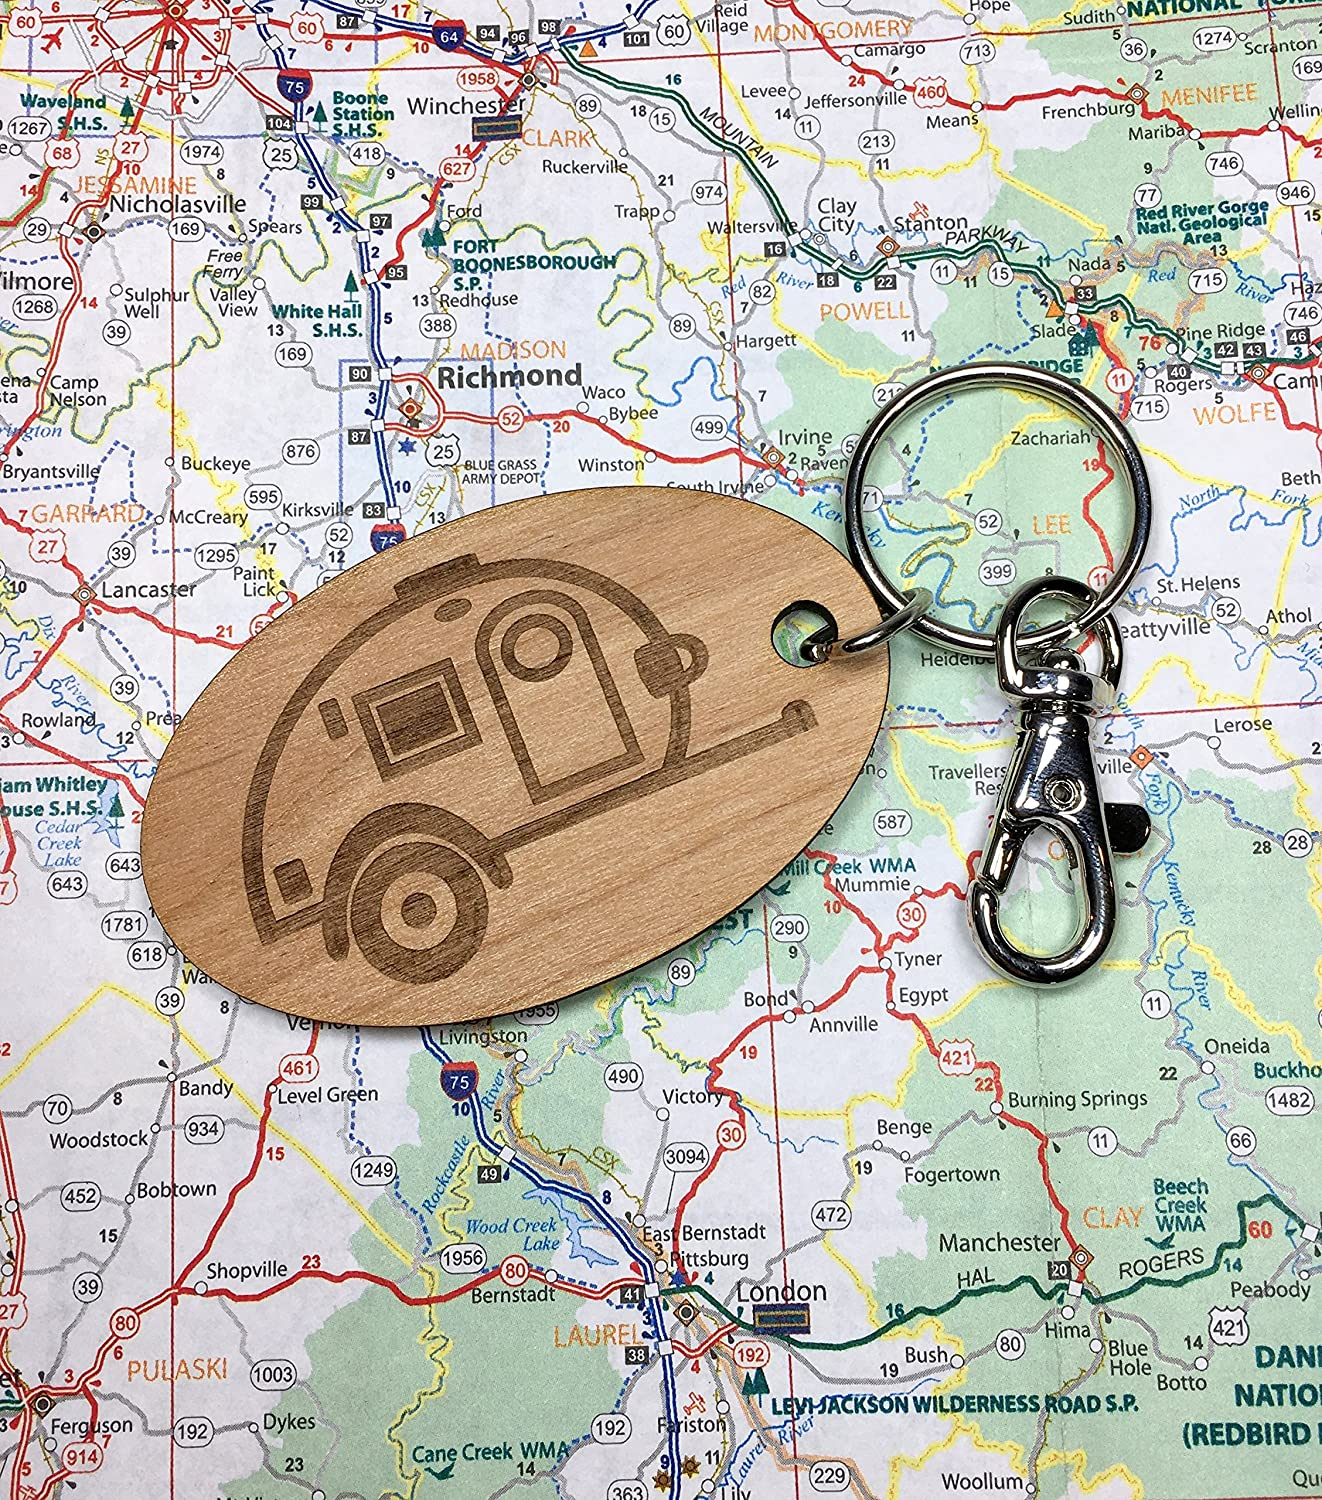 Teardrop Travel Trailer Key Fob